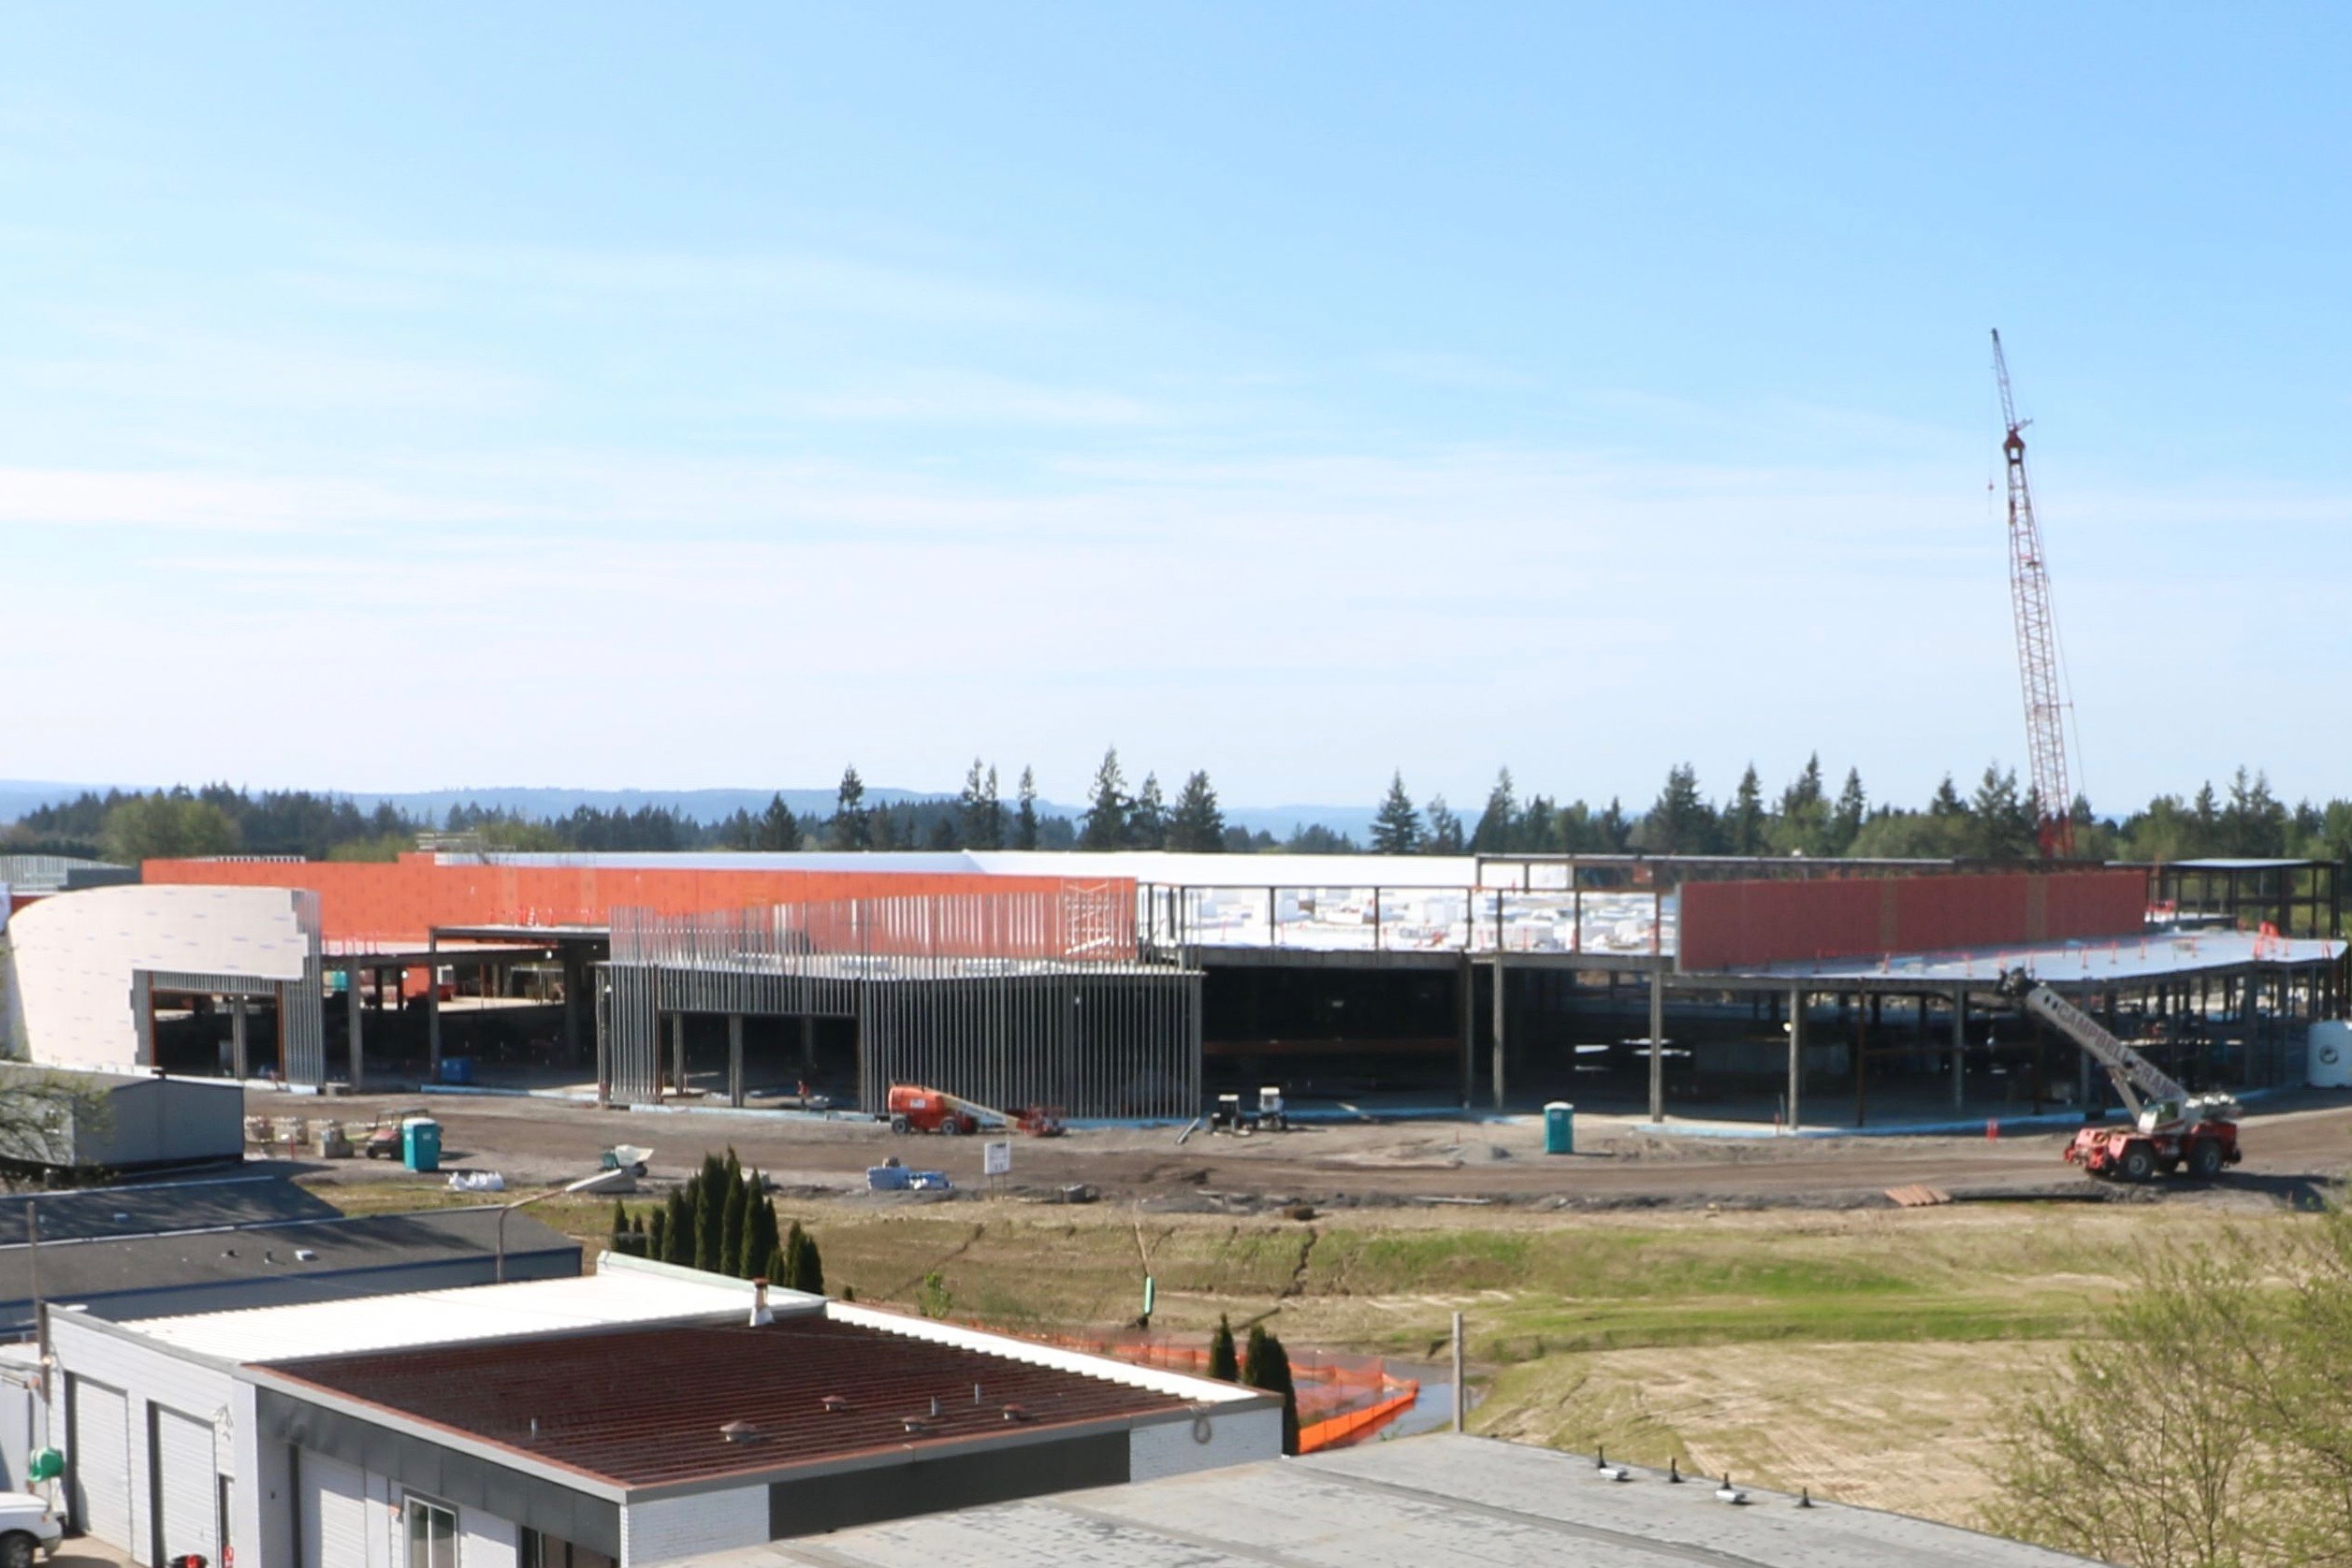 Cowlitz Tribe accuses county of threatening casino site workers